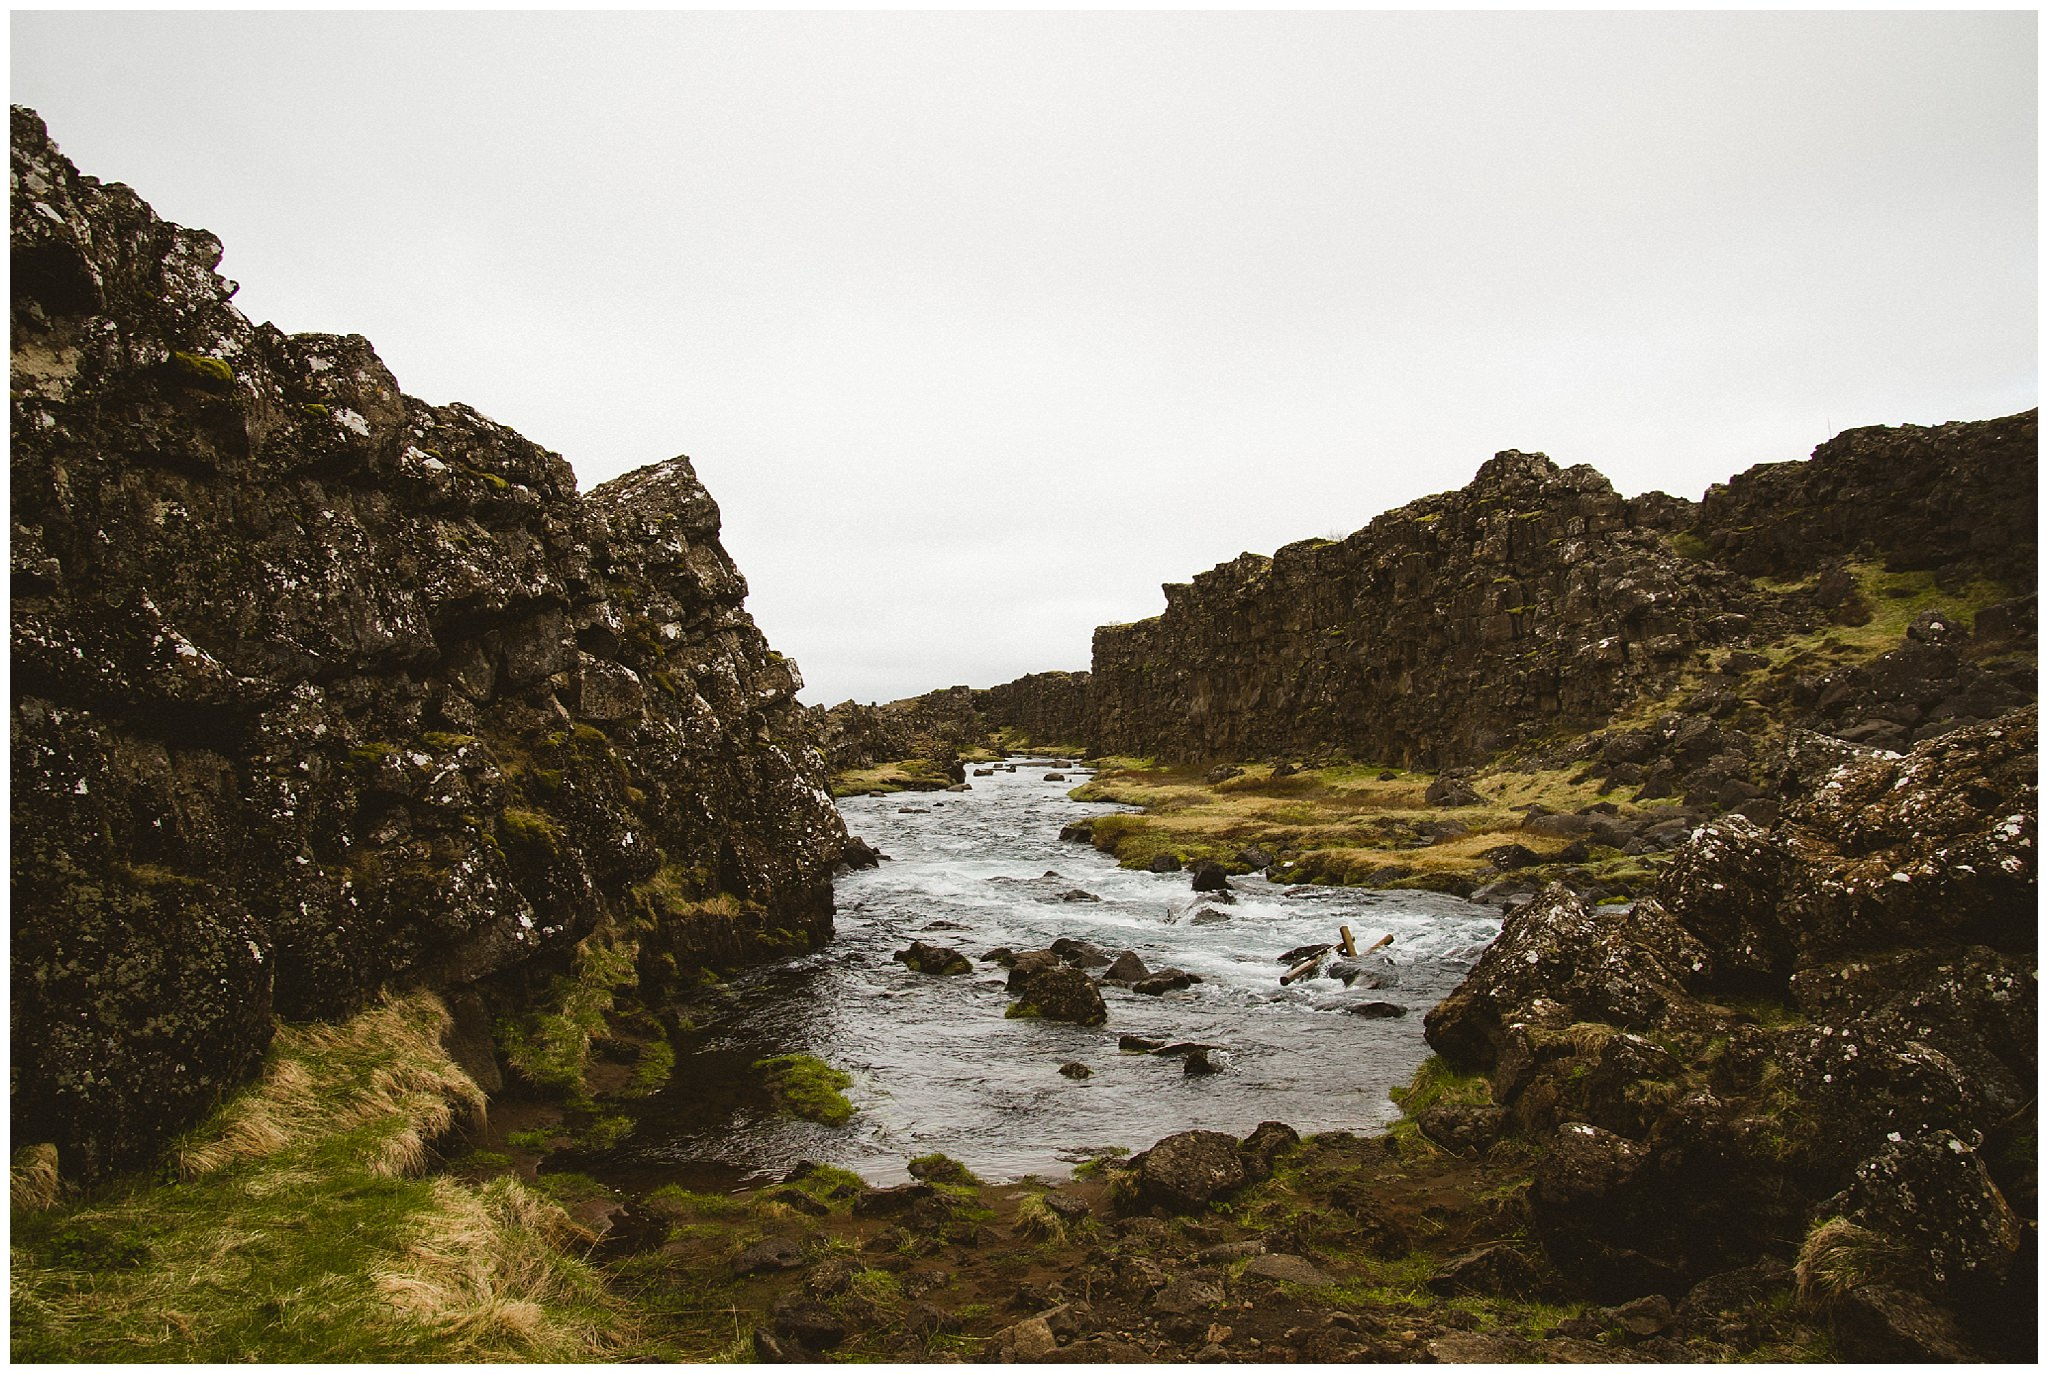 Iceland, Iceland wedding photographer, destination wedding photographer, travel photography, bc wedding photographer, Vancouver wedding photographer, Ronnie Lee Hill Photography, Pingvellir